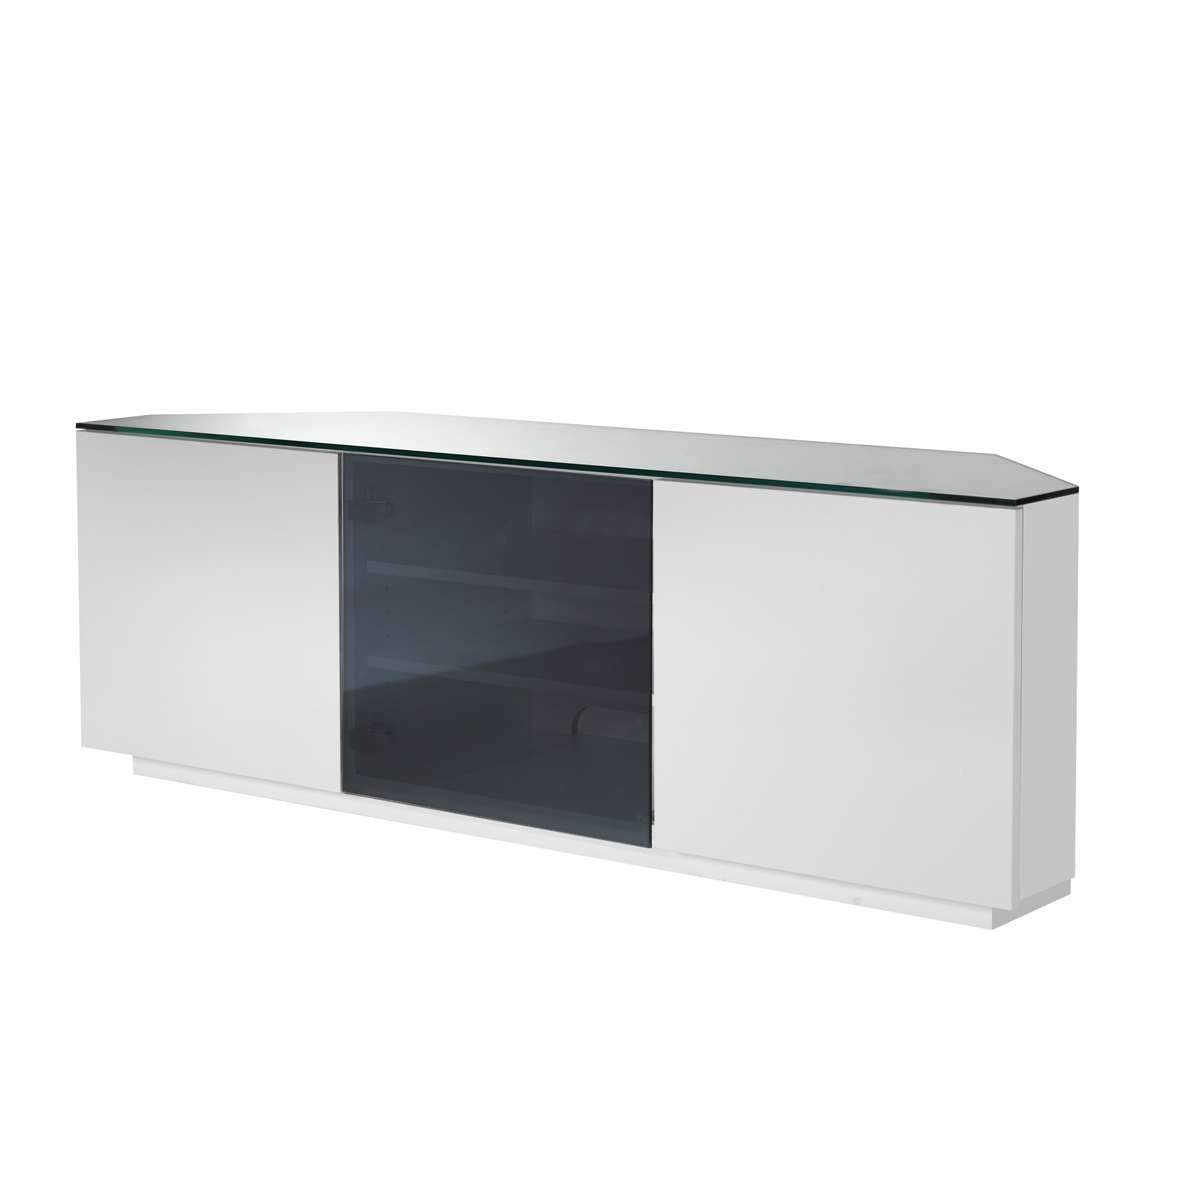 Ukcf Milan White Gloss & Black Glass Corner Tv Stand 150Cm In Black Corner Tv Cabinets With Glass Doors (View 19 of 20)